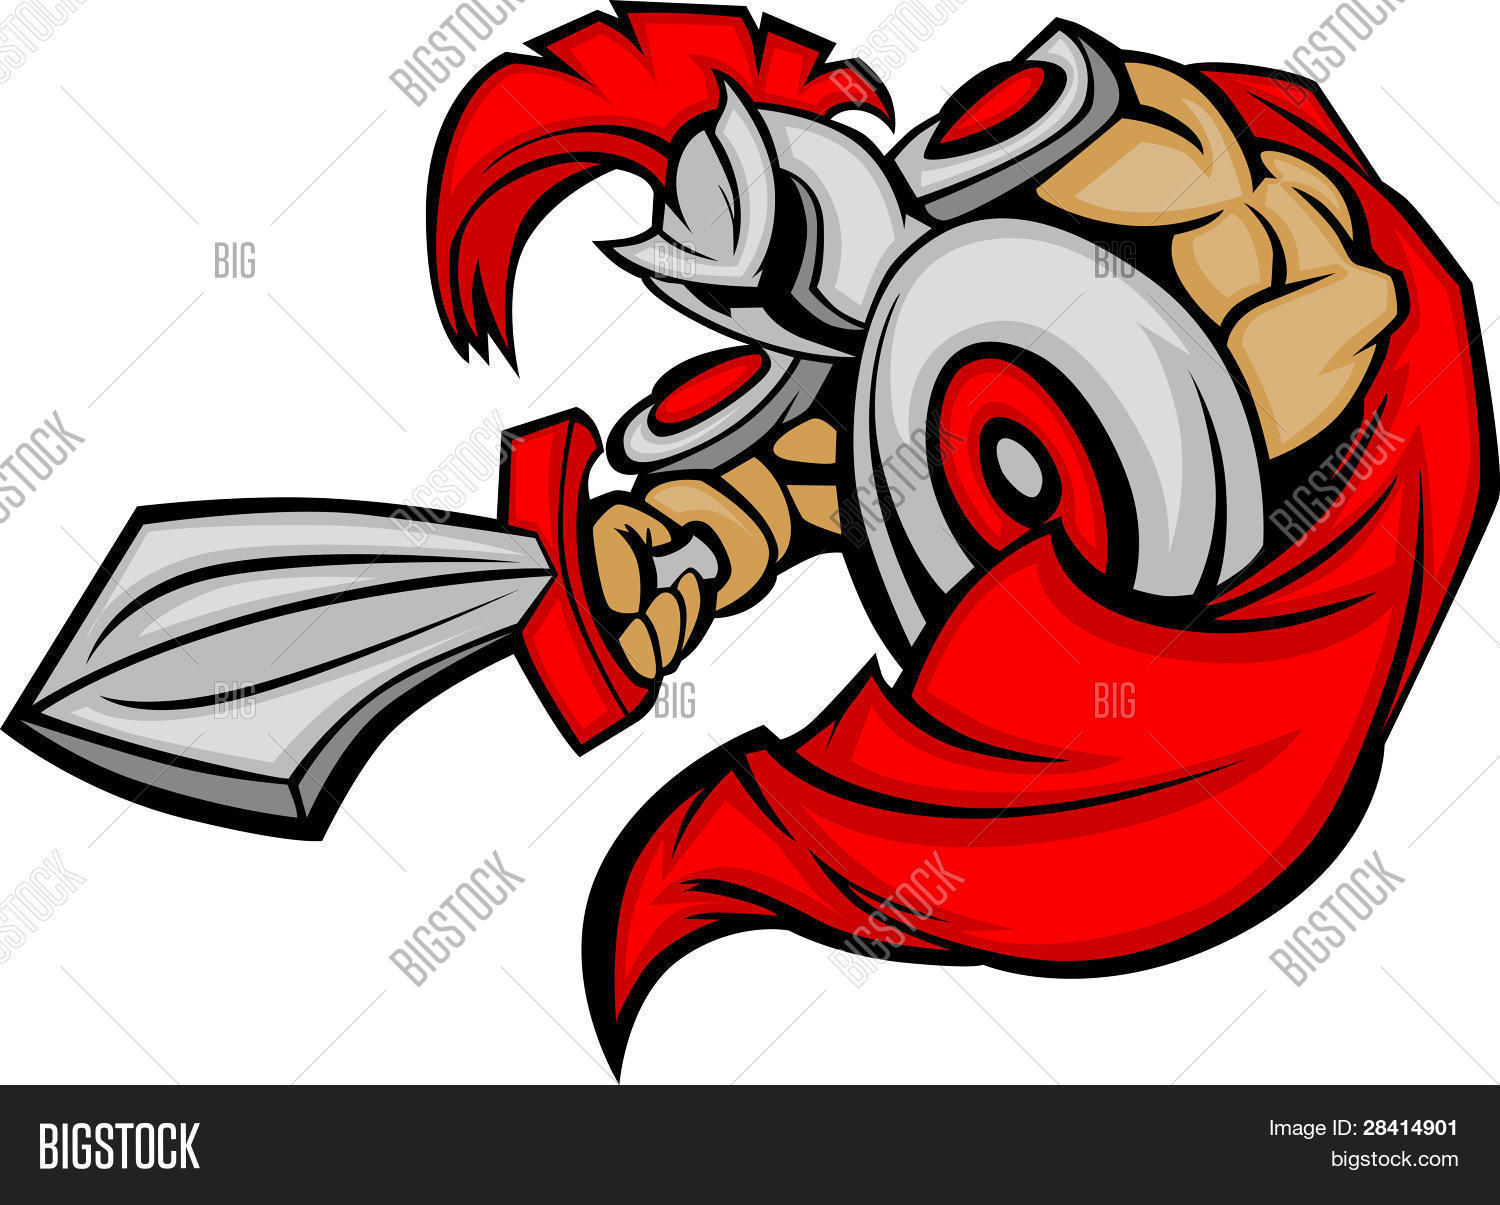 trojan sword clipart - HD 1800×1446